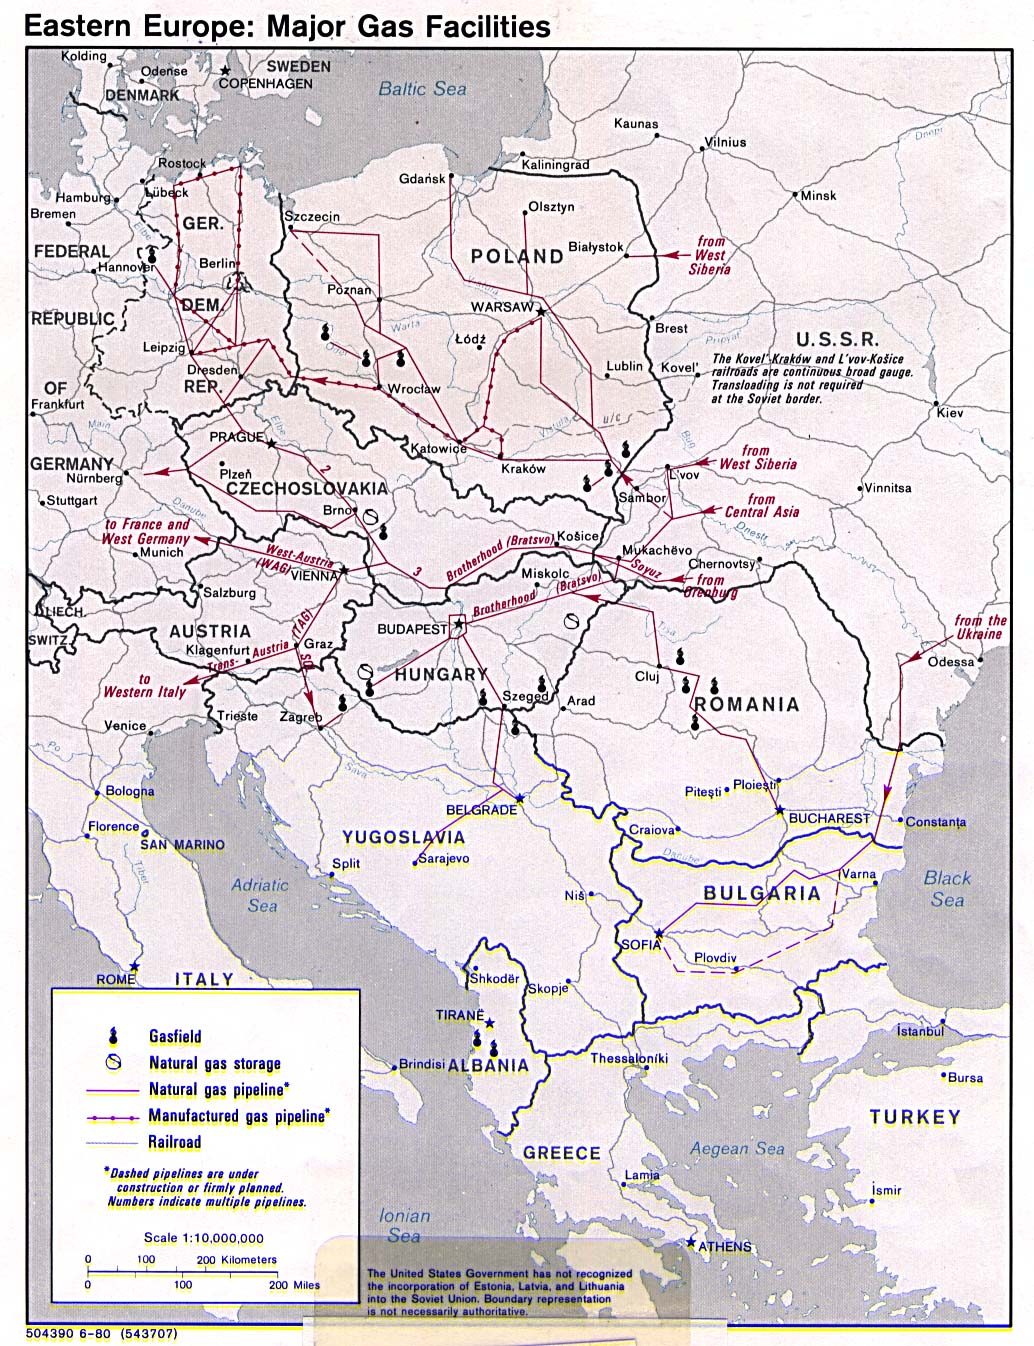 eastern europe major gas facilities